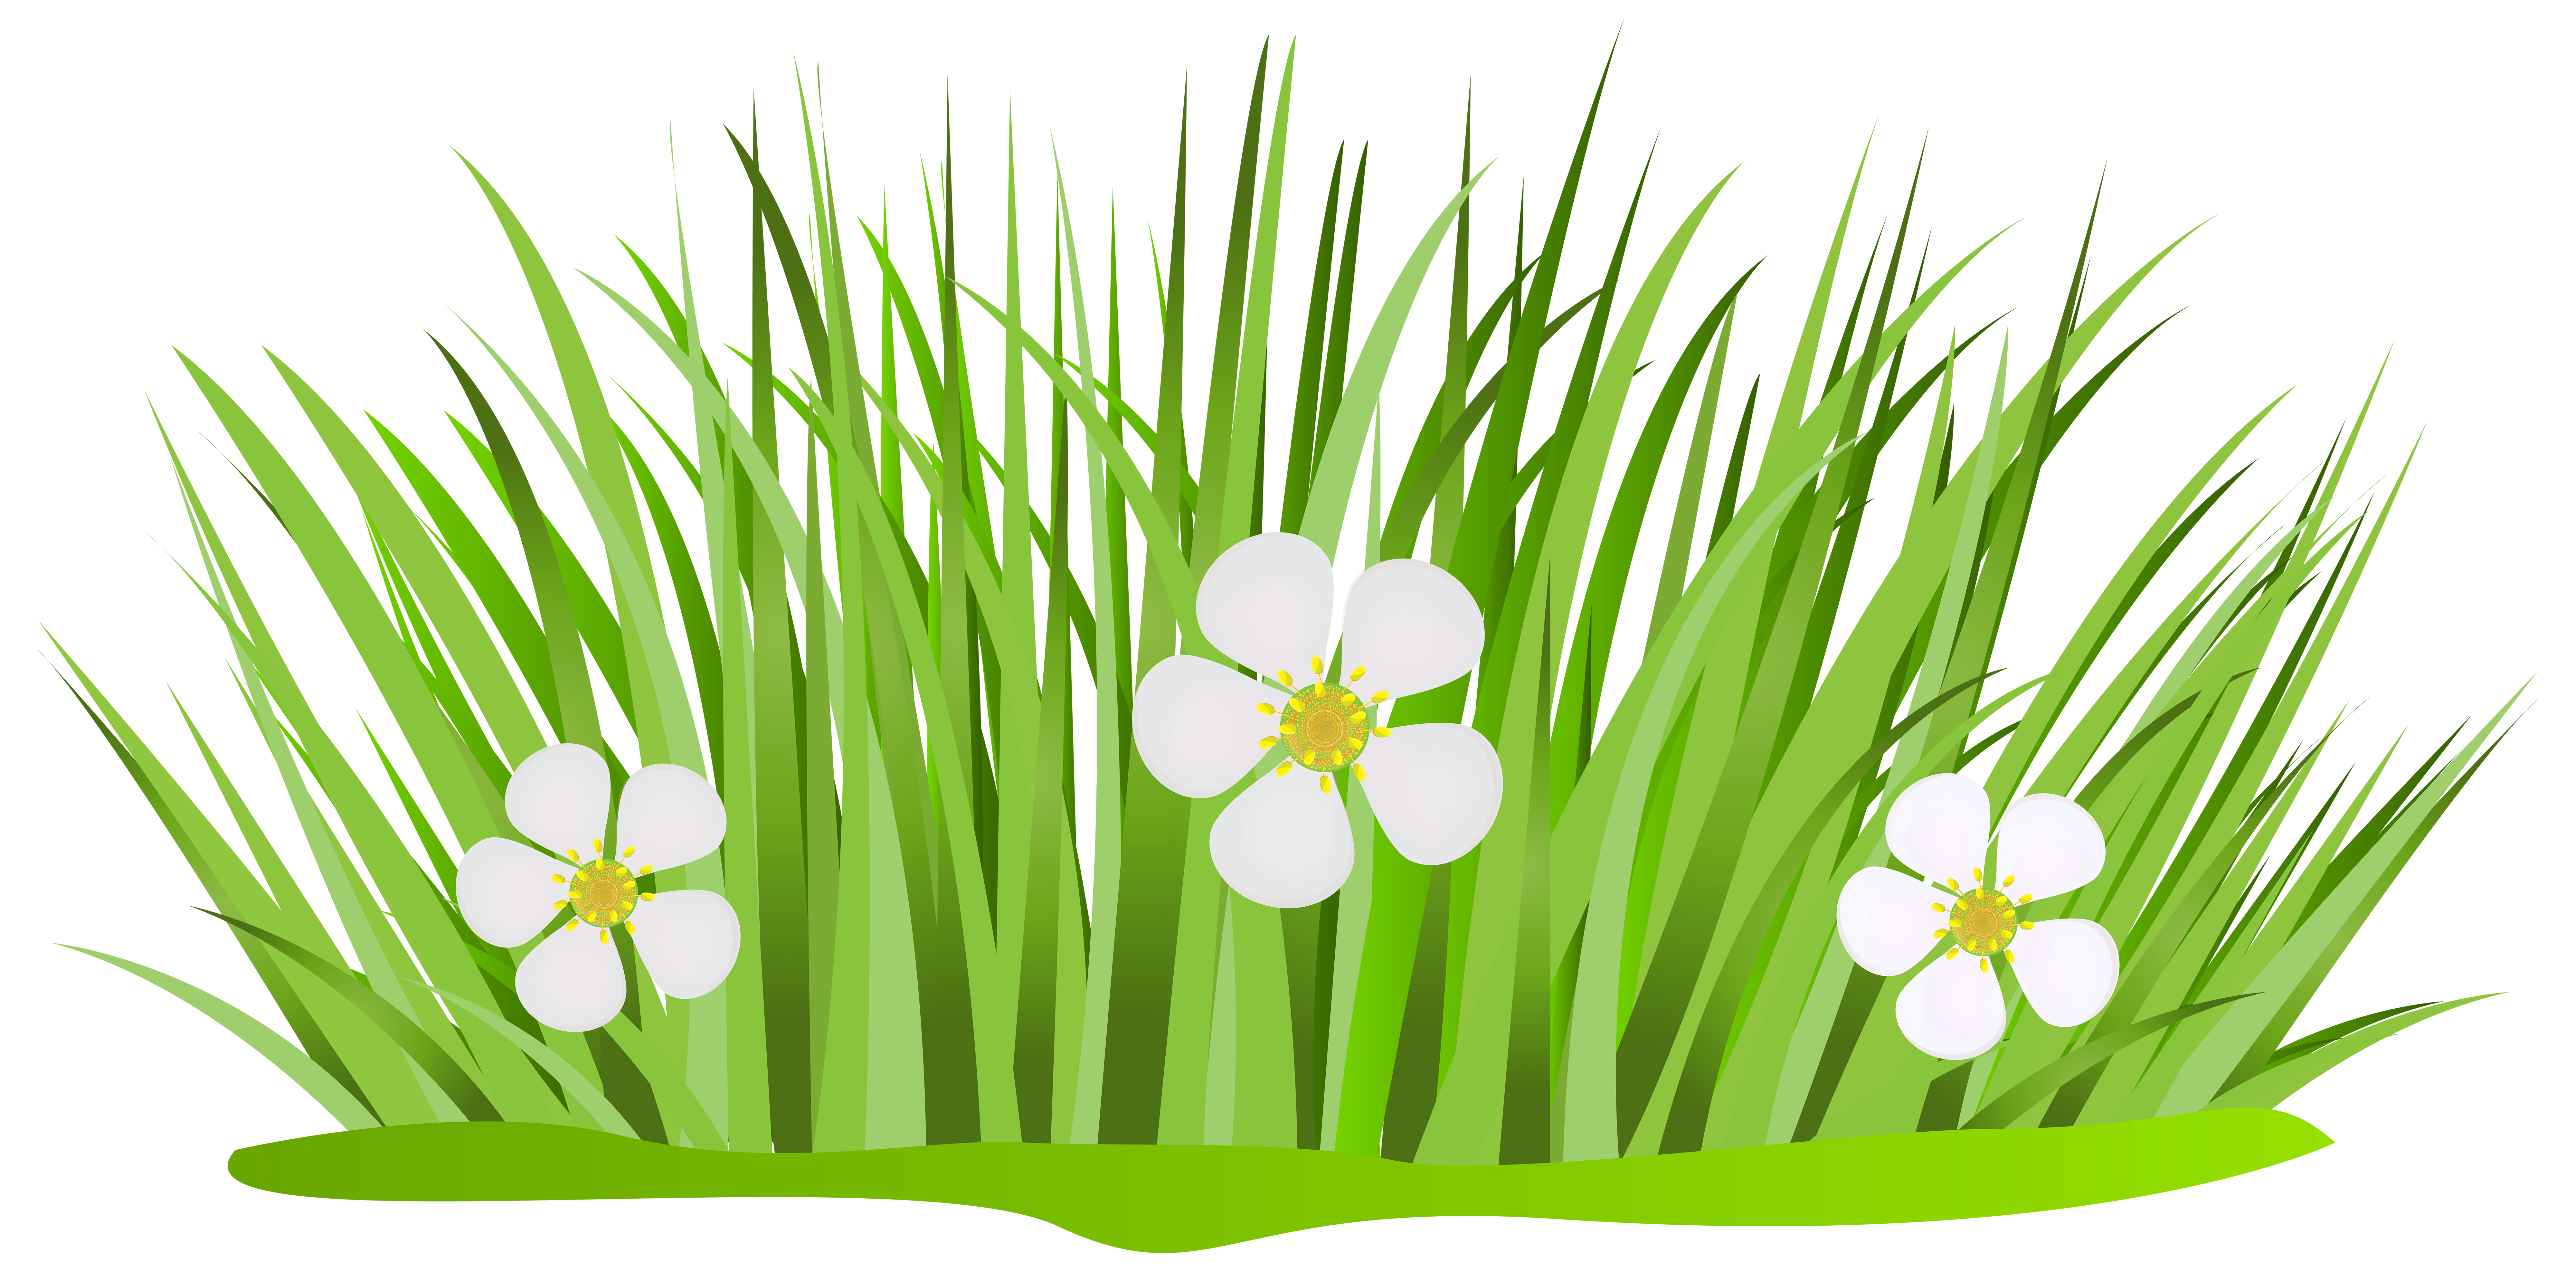 Grass Patch with Flowers PNG Clip Art Image.